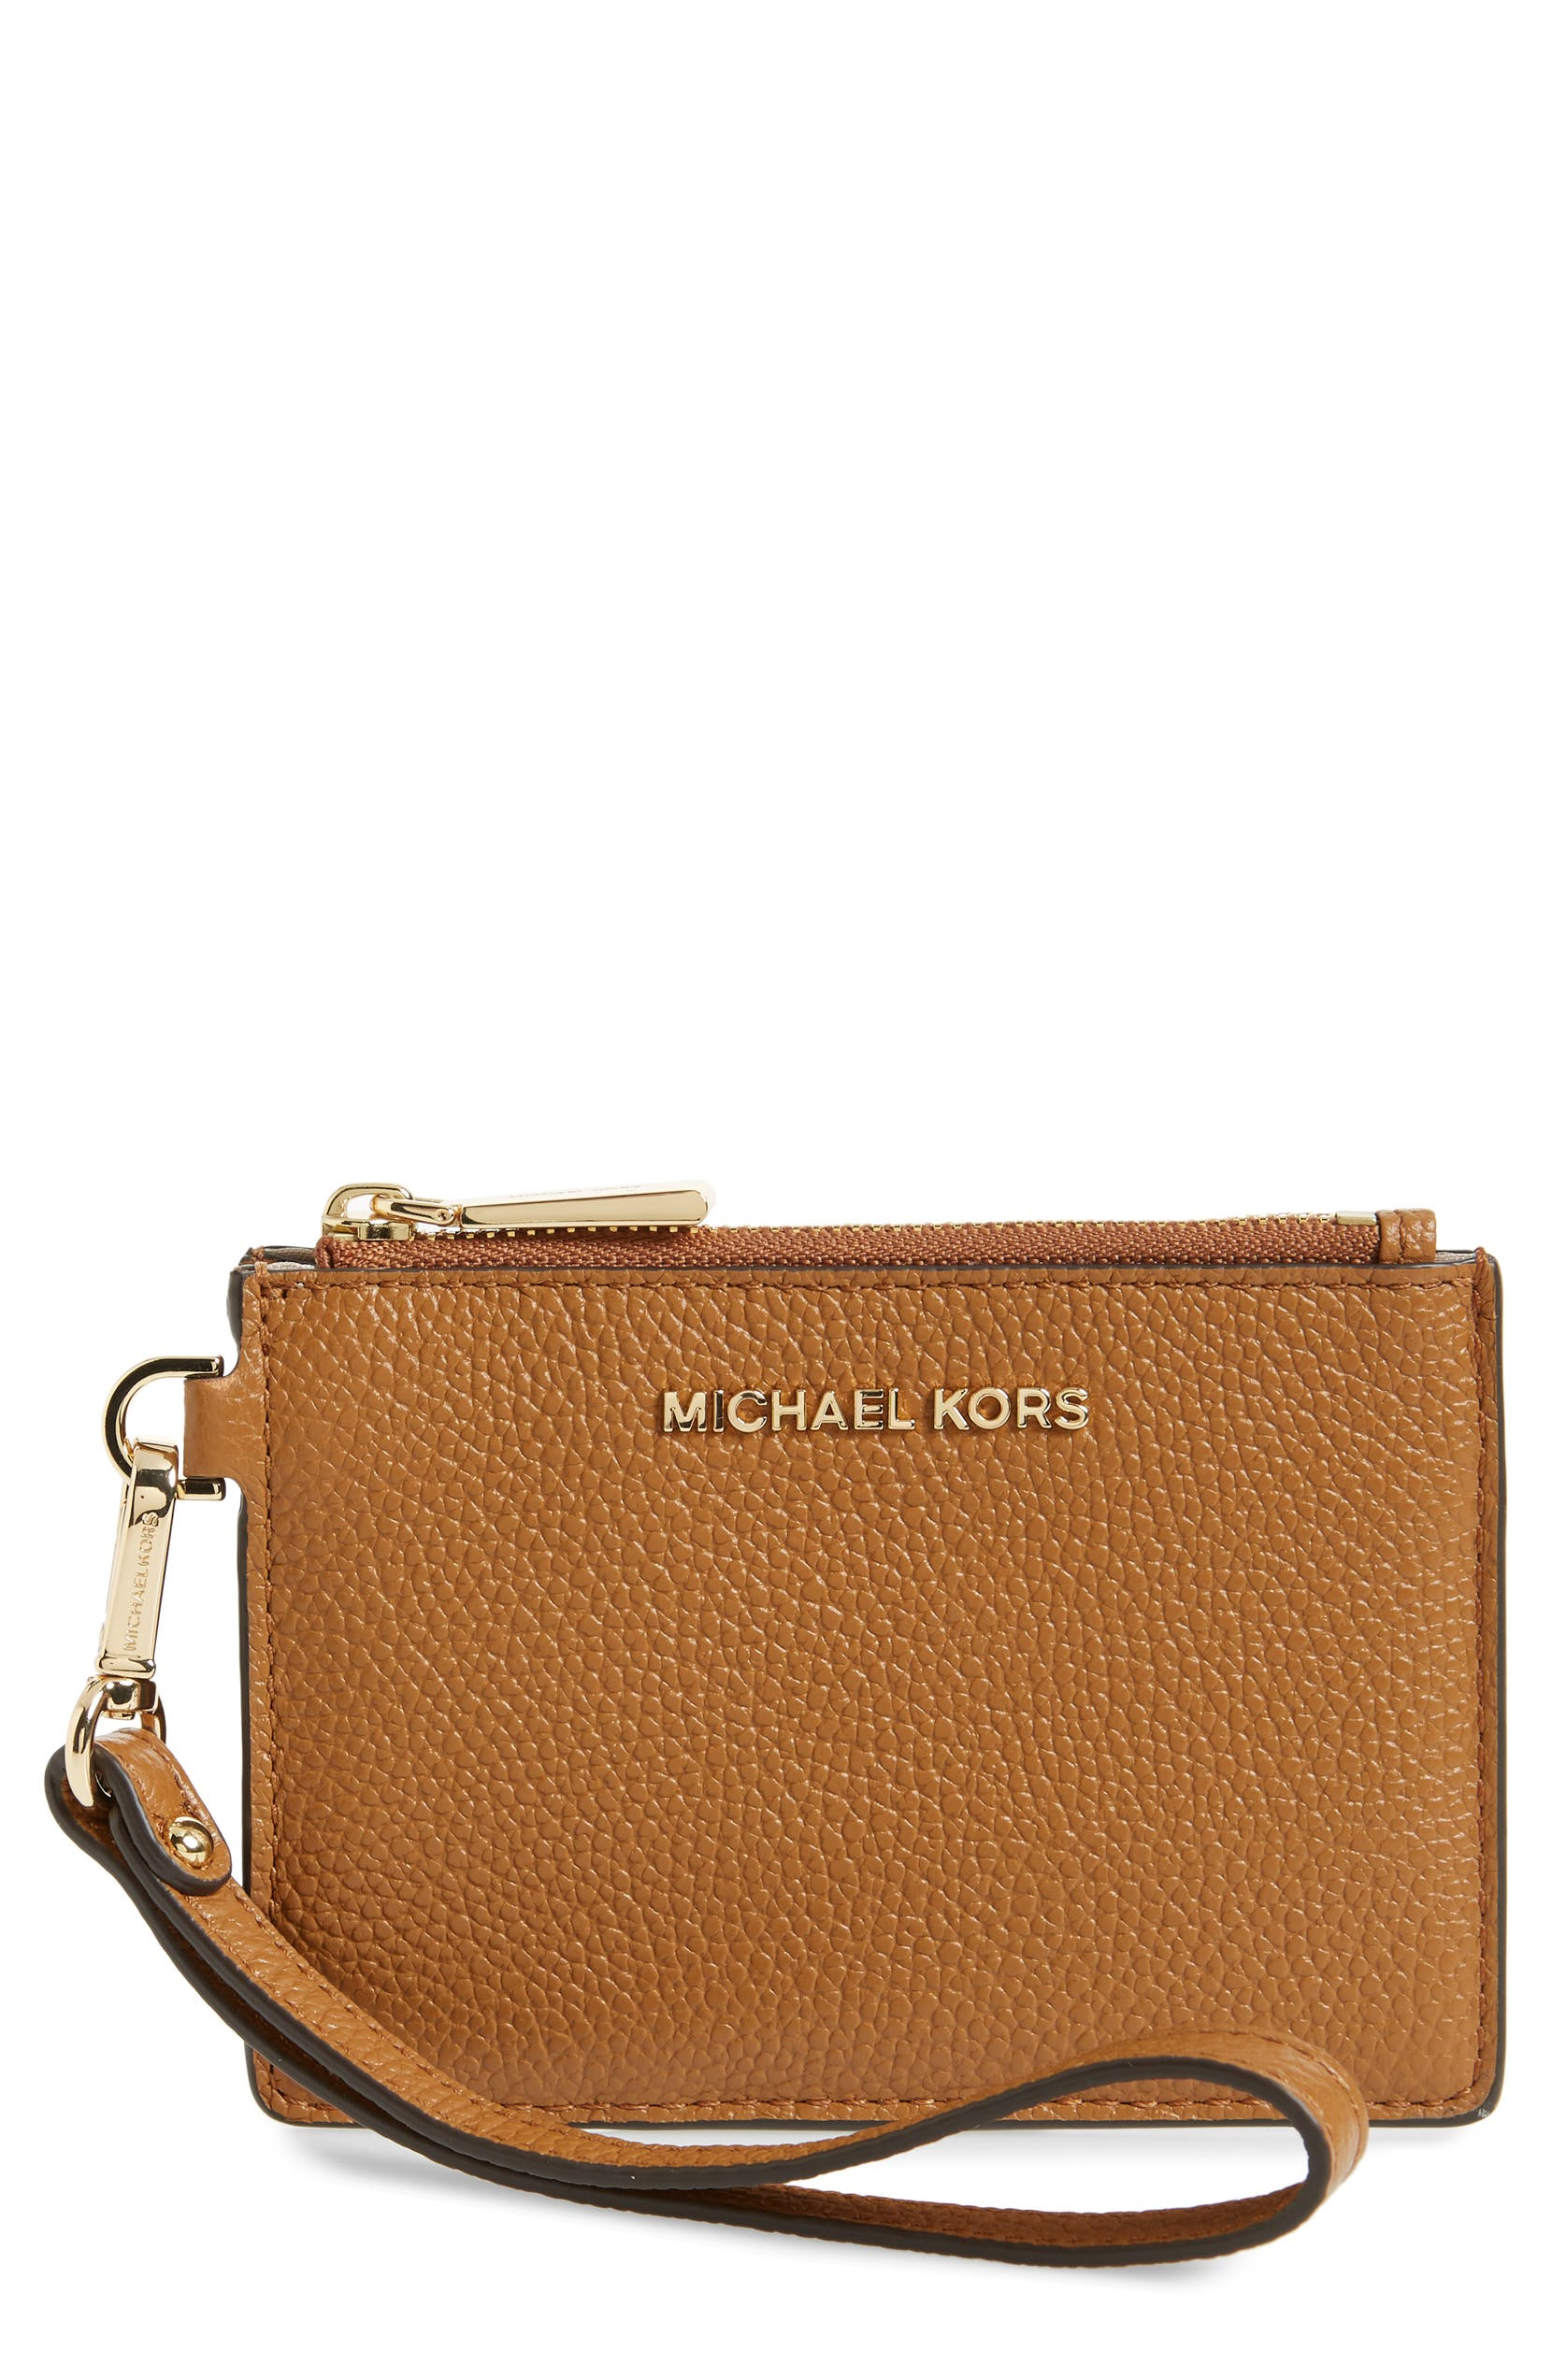 e6b45ae4dfc4 MICHAEL Michael Kors Small Mercer Leather RFID Coin Purse | Nordstrom